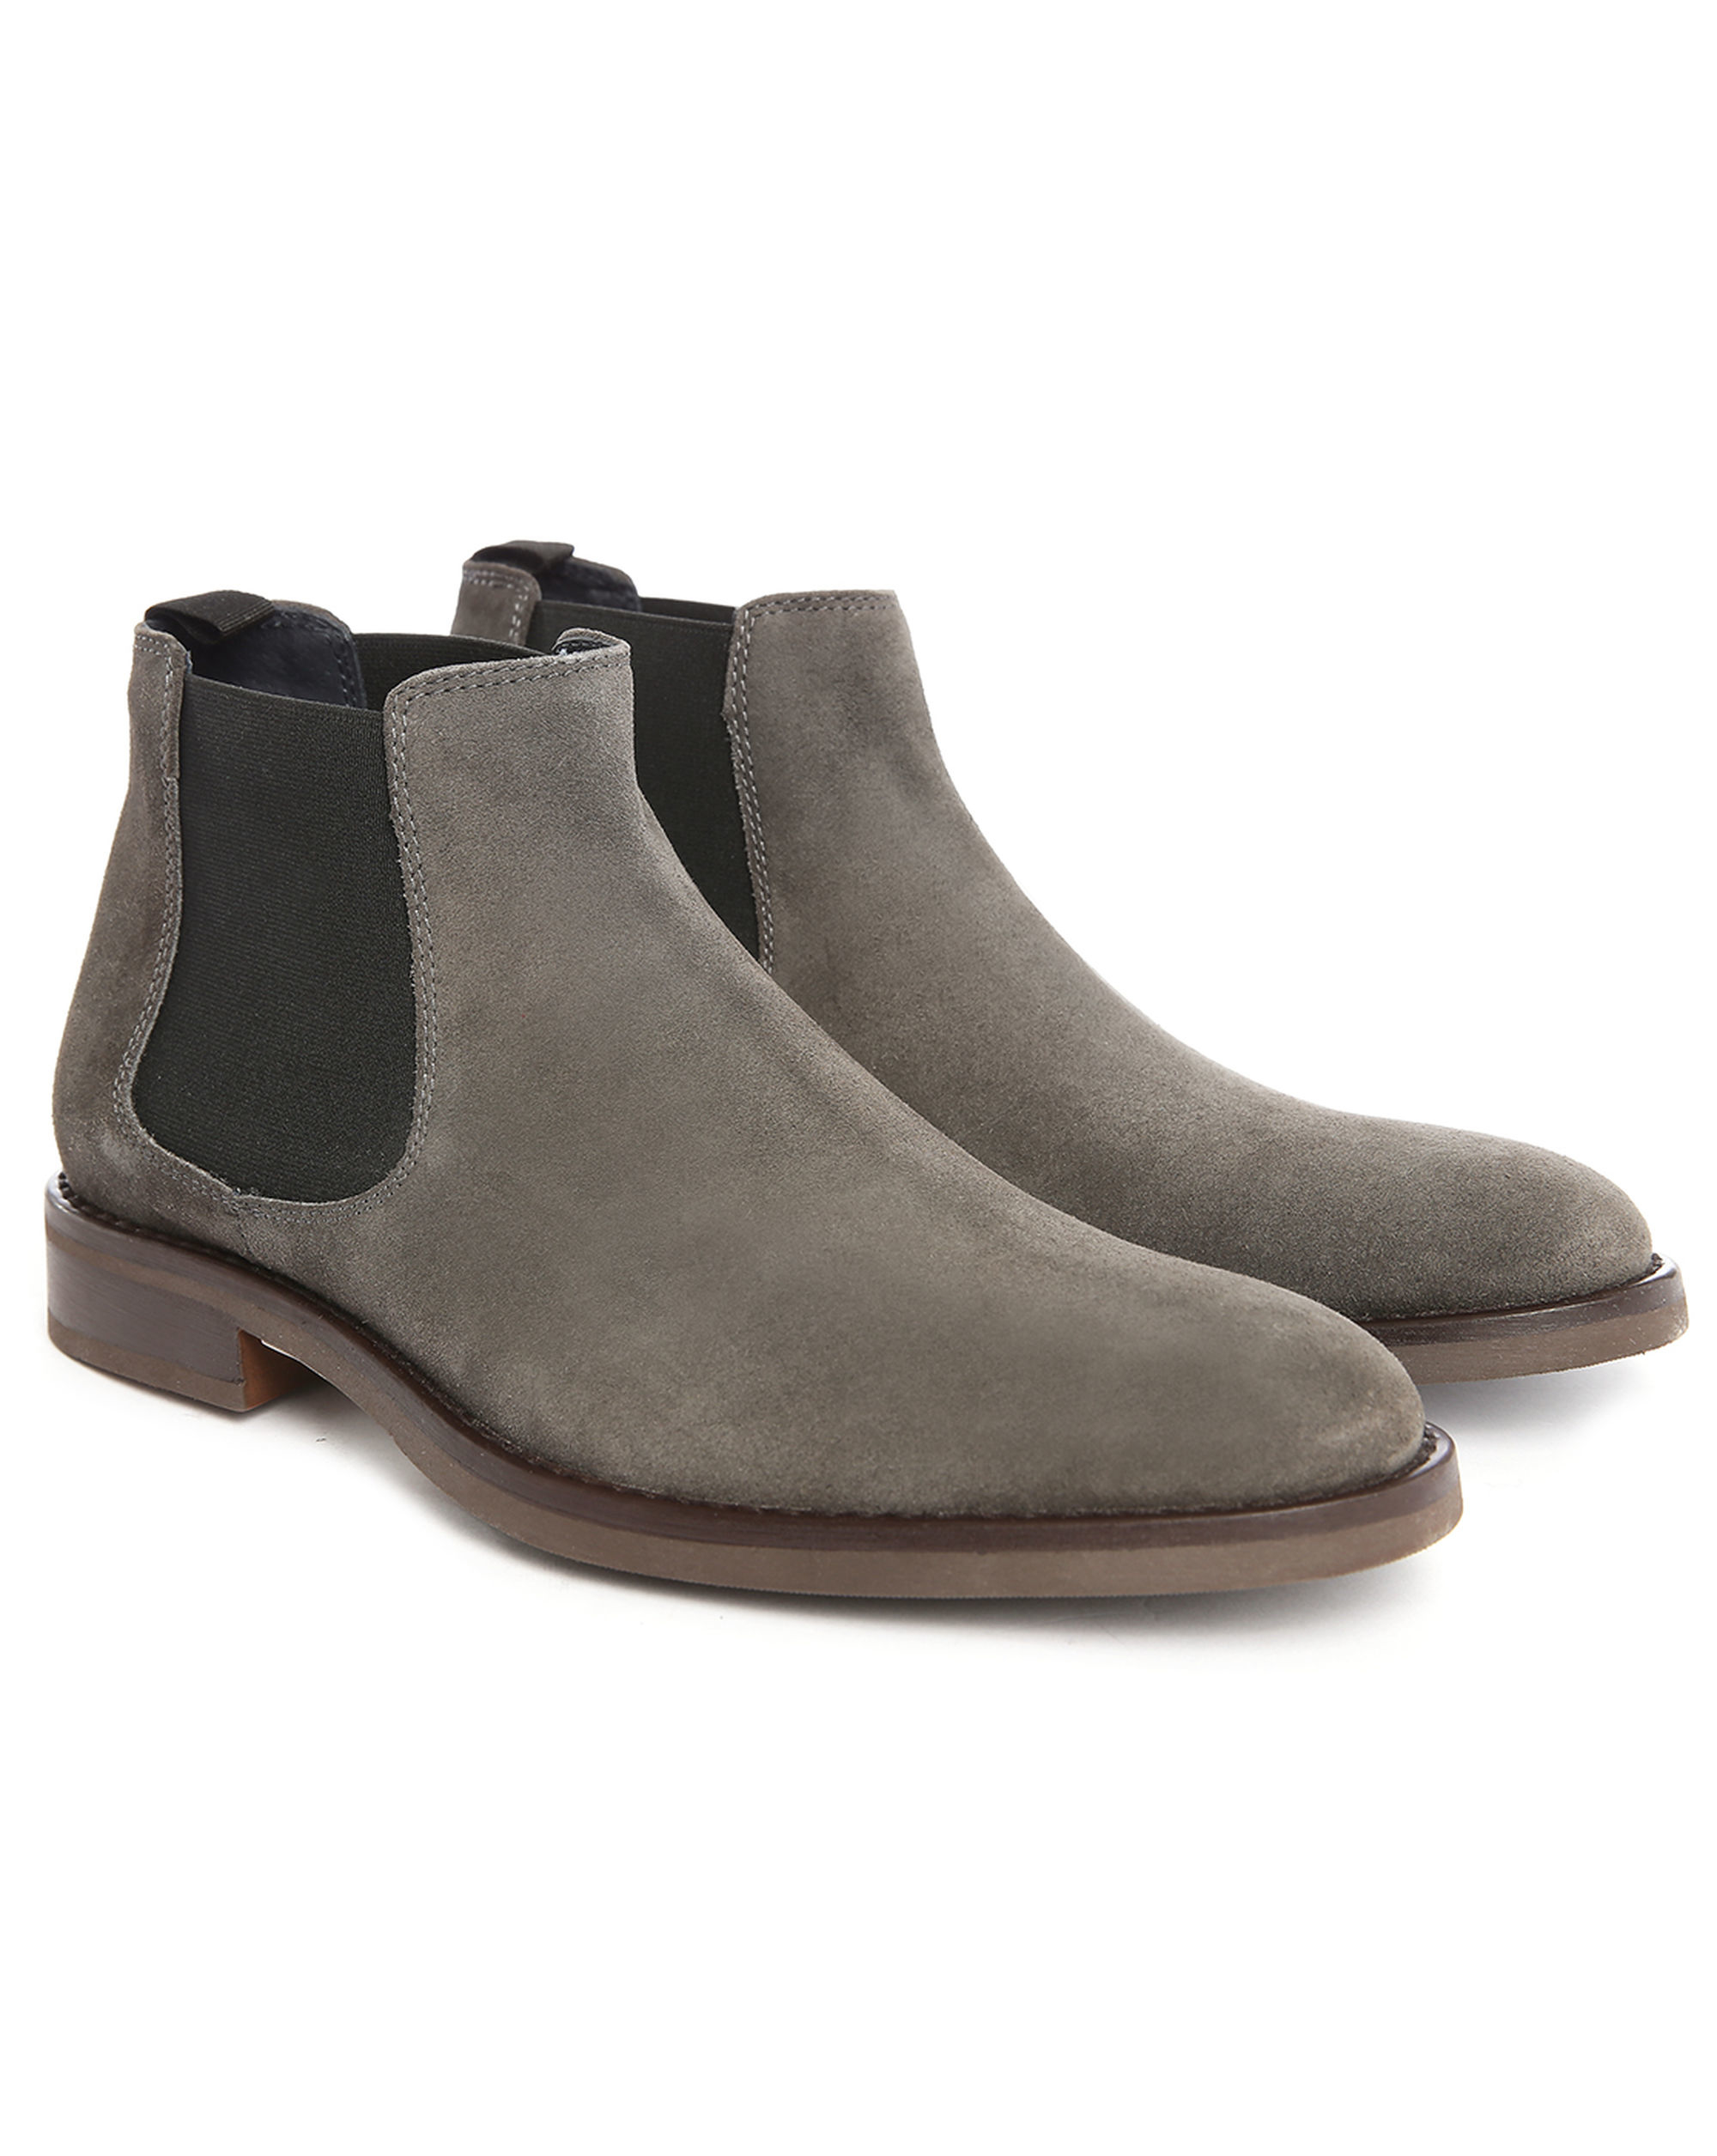 tim o suede chelsea boots in gray for men lyst. Black Bedroom Furniture Sets. Home Design Ideas